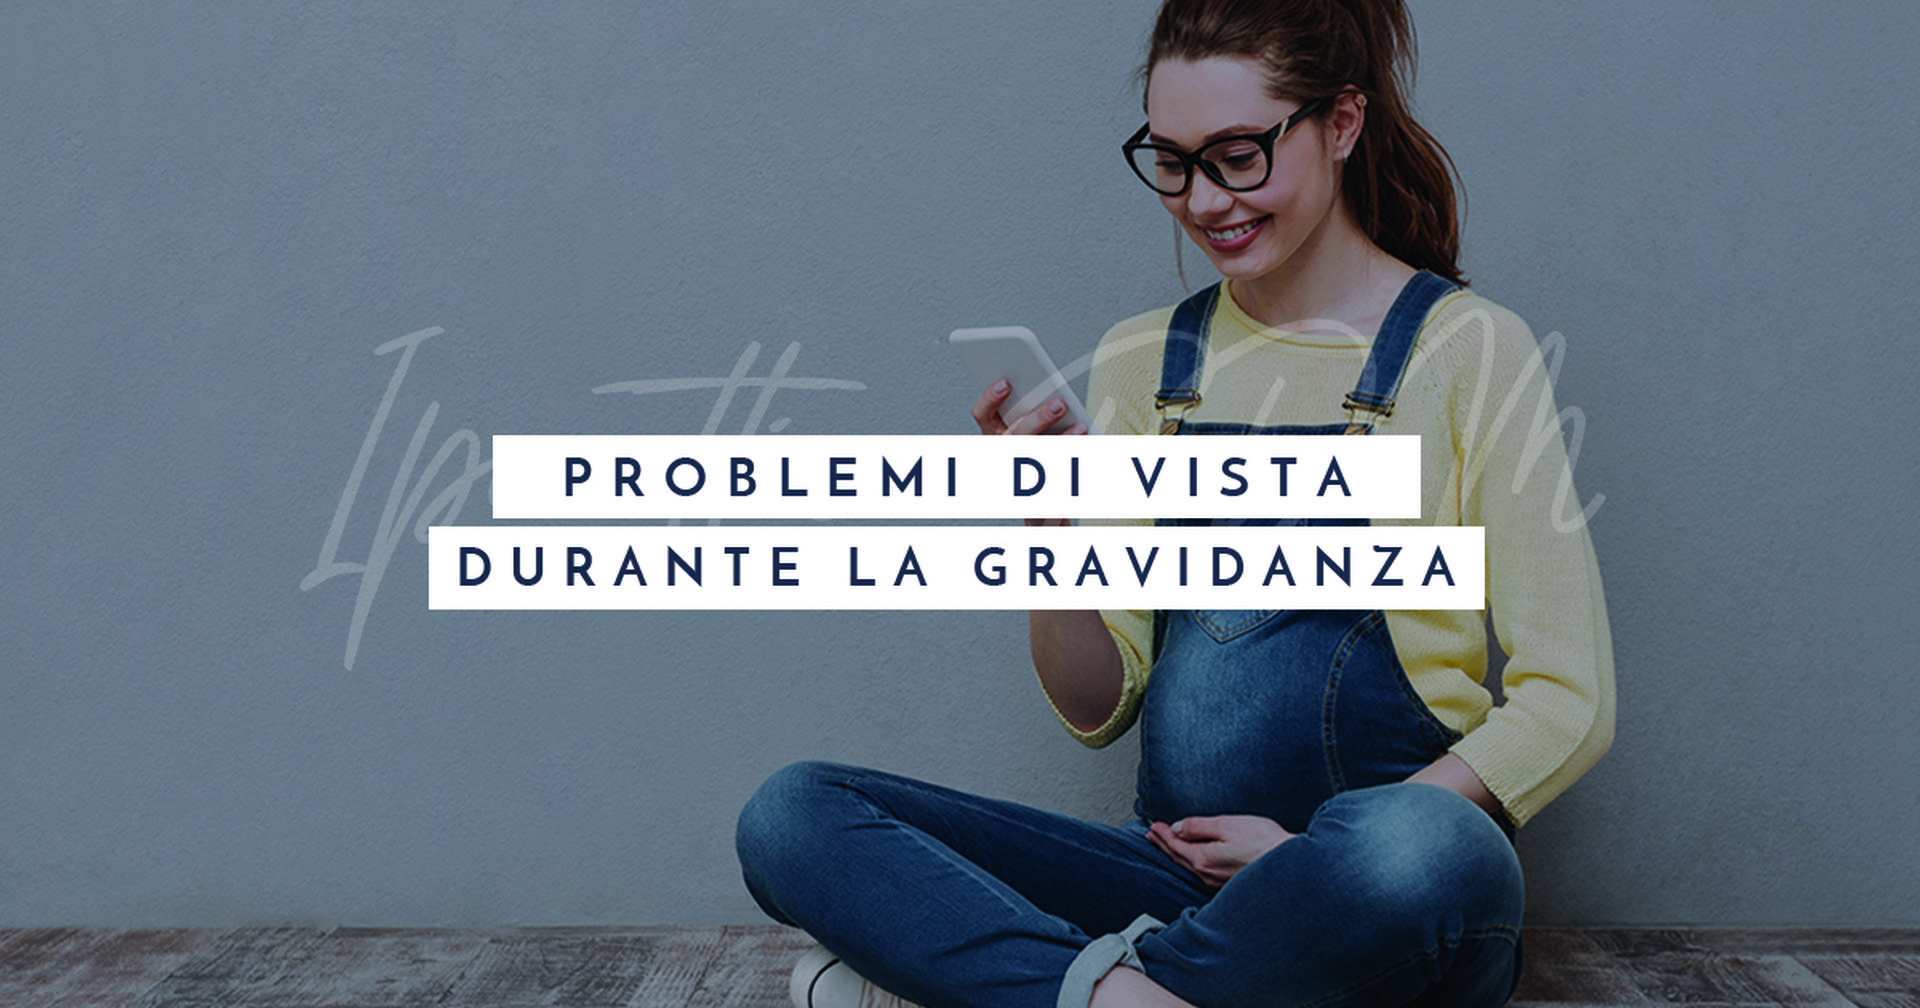 Problemi di vista in gravidanza? No problem!